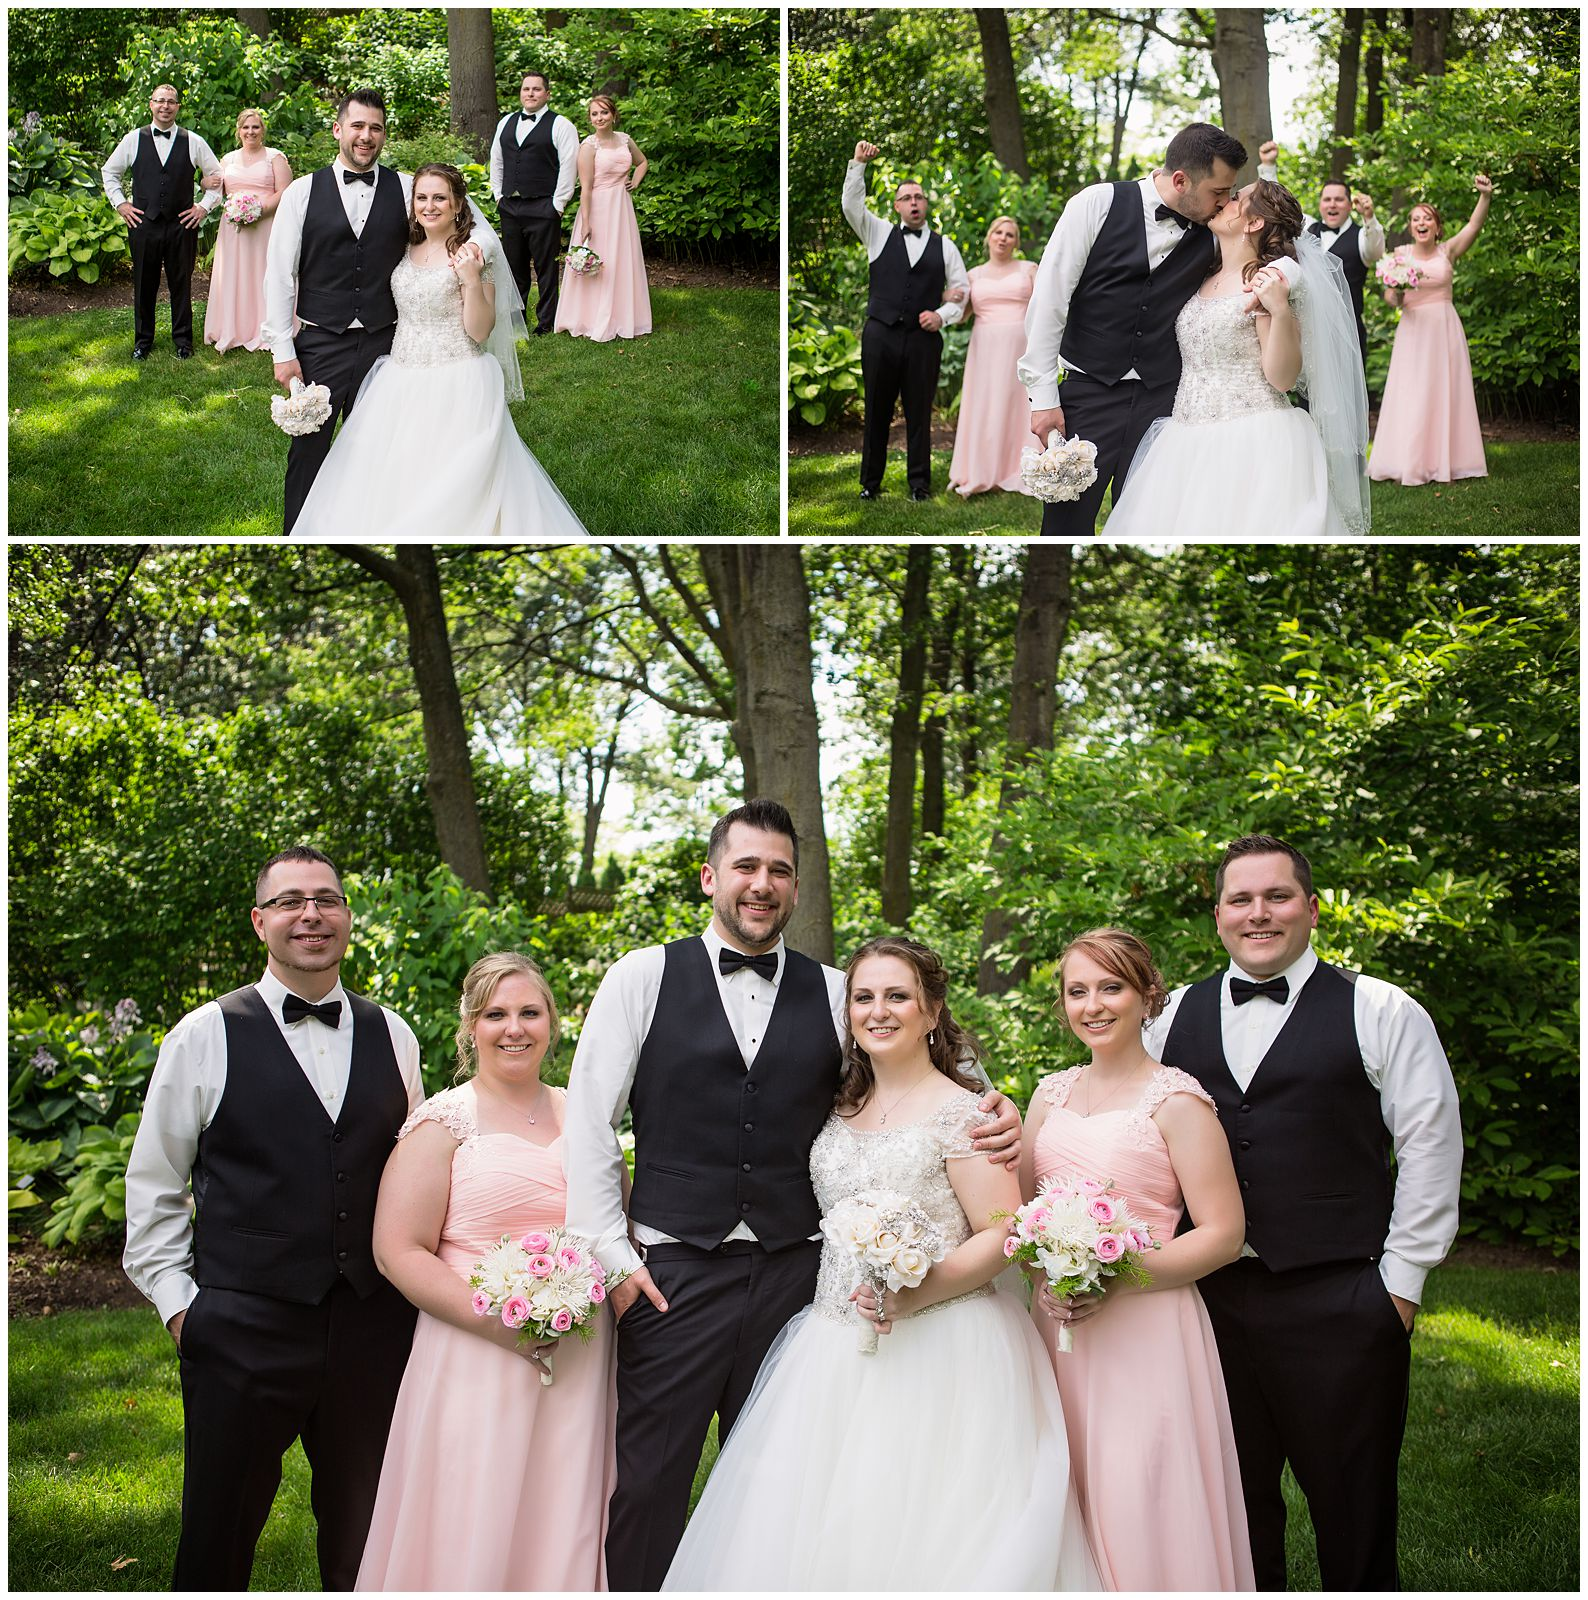 Brown_Wedding_Cj_Photography